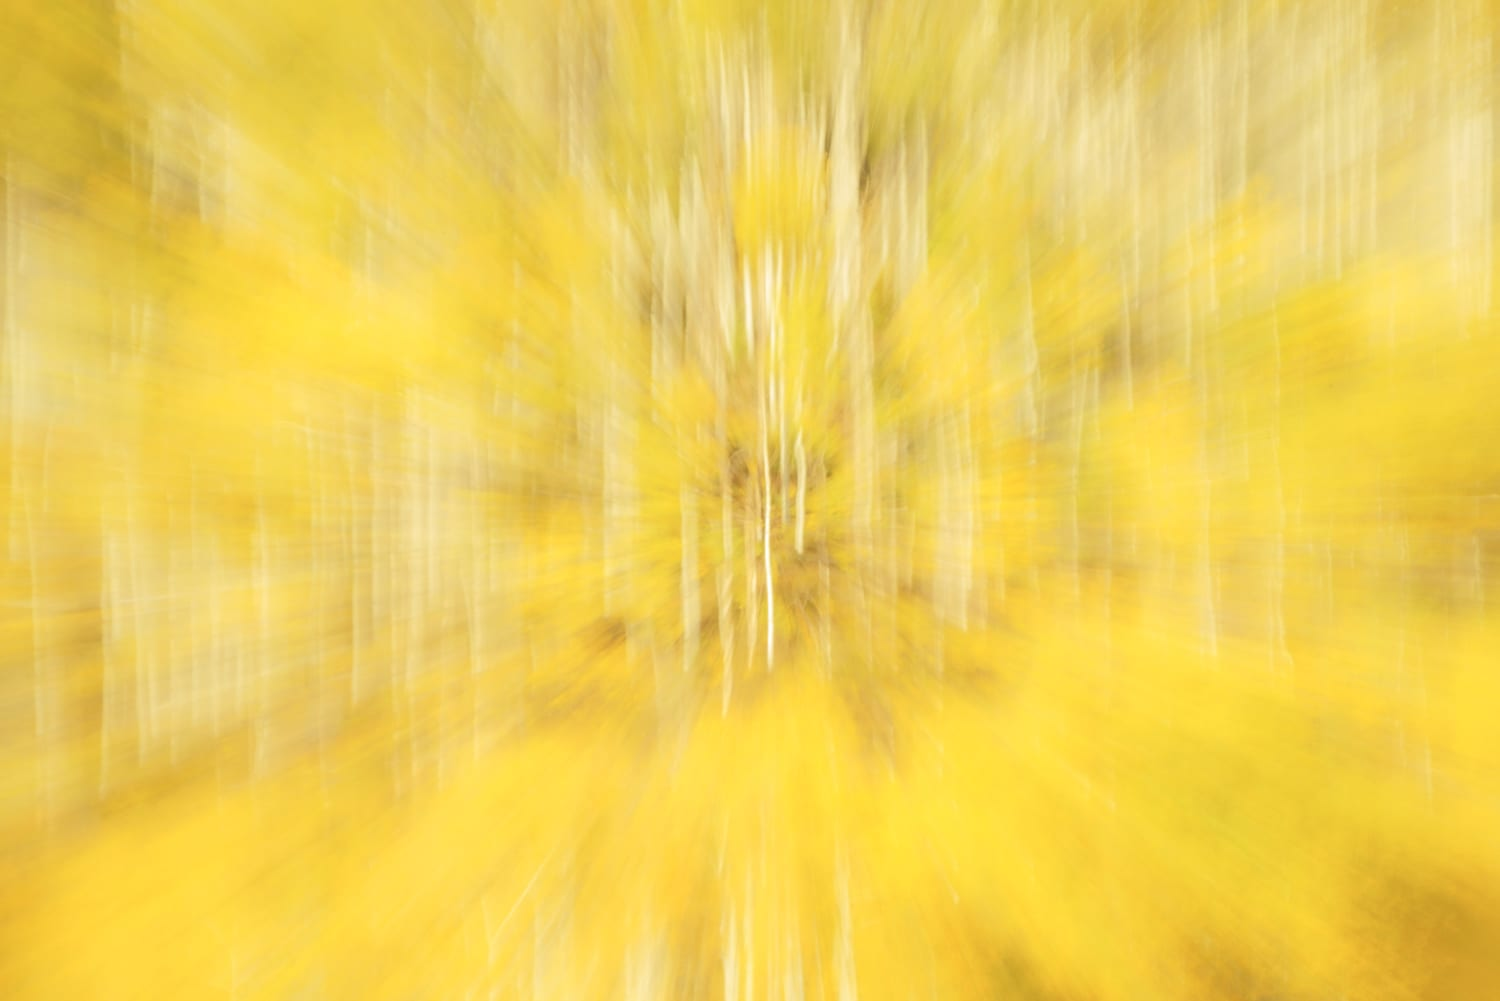 Blurred yellow aspens